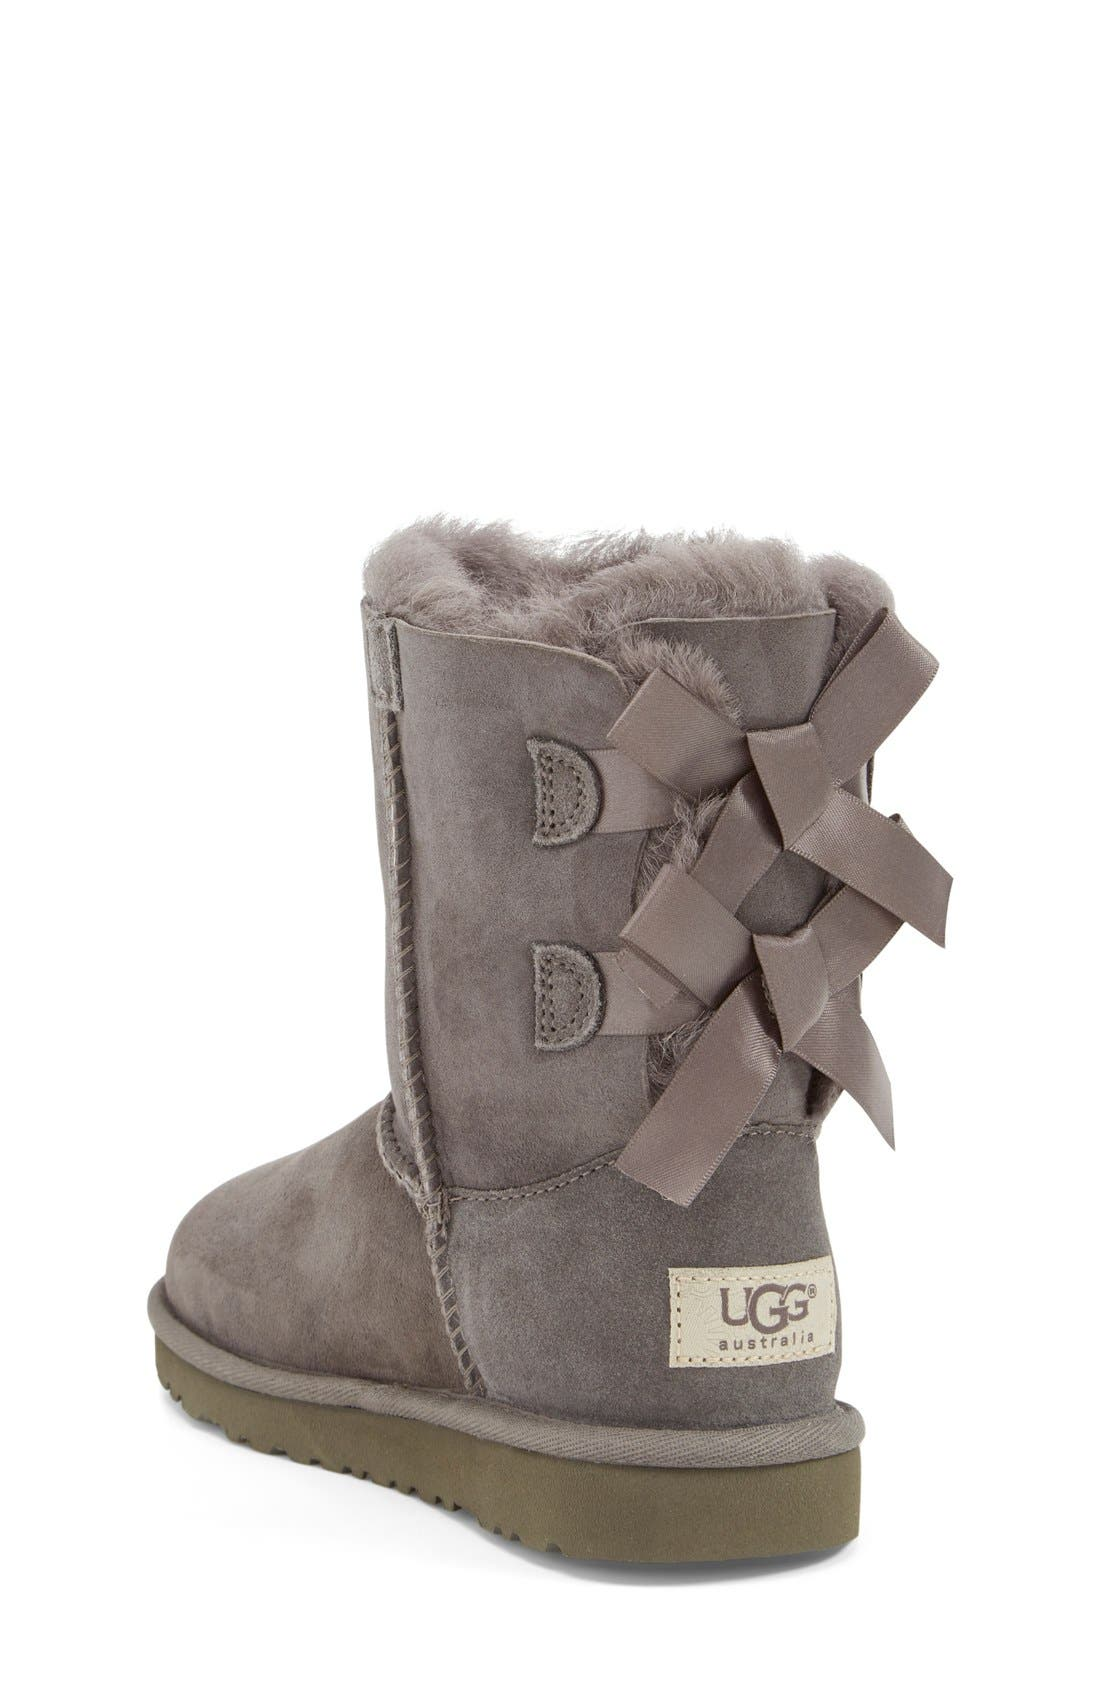 Alternate Image 2  - UGG® Bailey Bow Boot (Walker, Toddler, Little Kid & Big Kid)